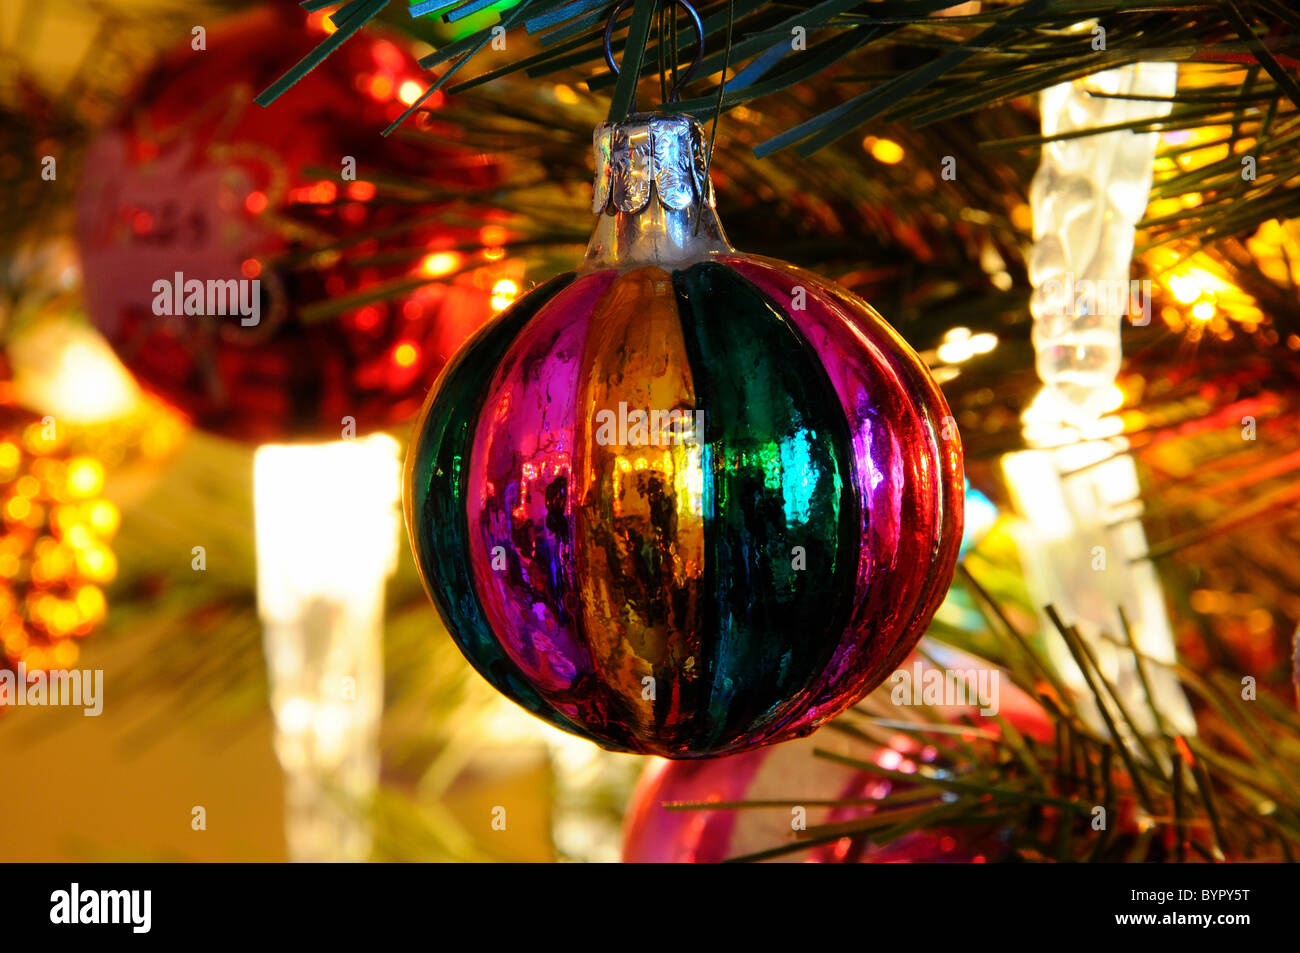 glass christmas tree decorations hanging in tree - Glass Christmas Tree Decorations